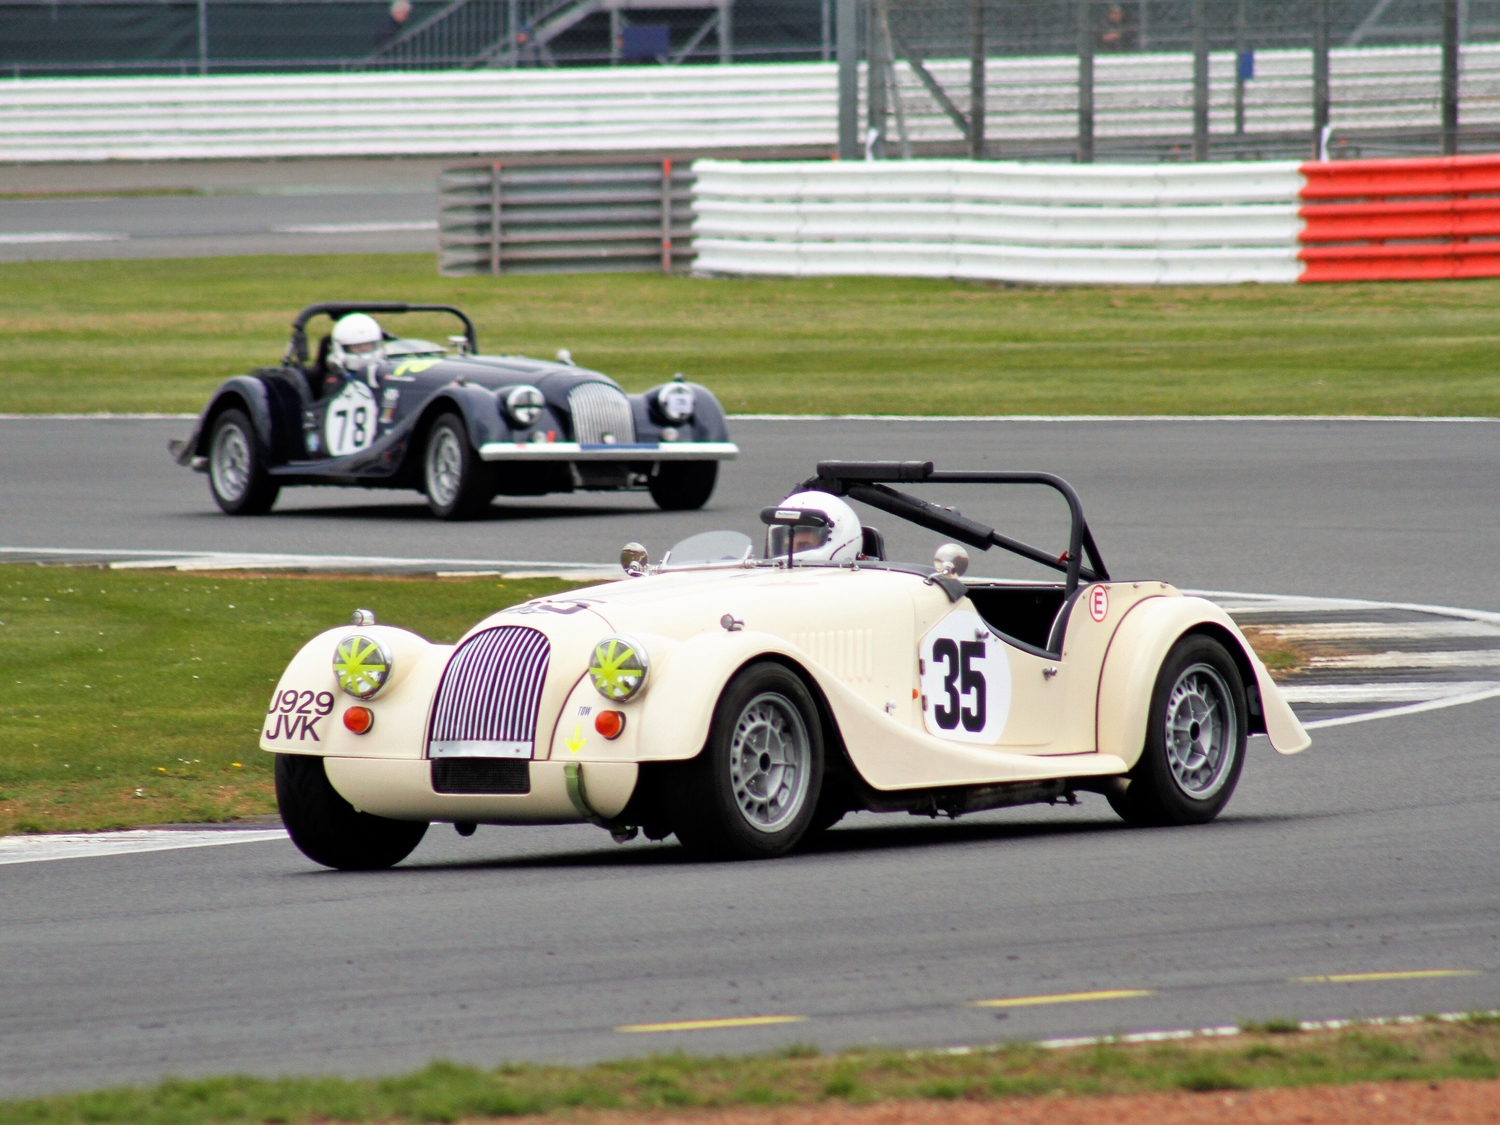 1992 (Pre Cat) Class C Competition Morgan +8 - £27,995.00 (Reduced price)